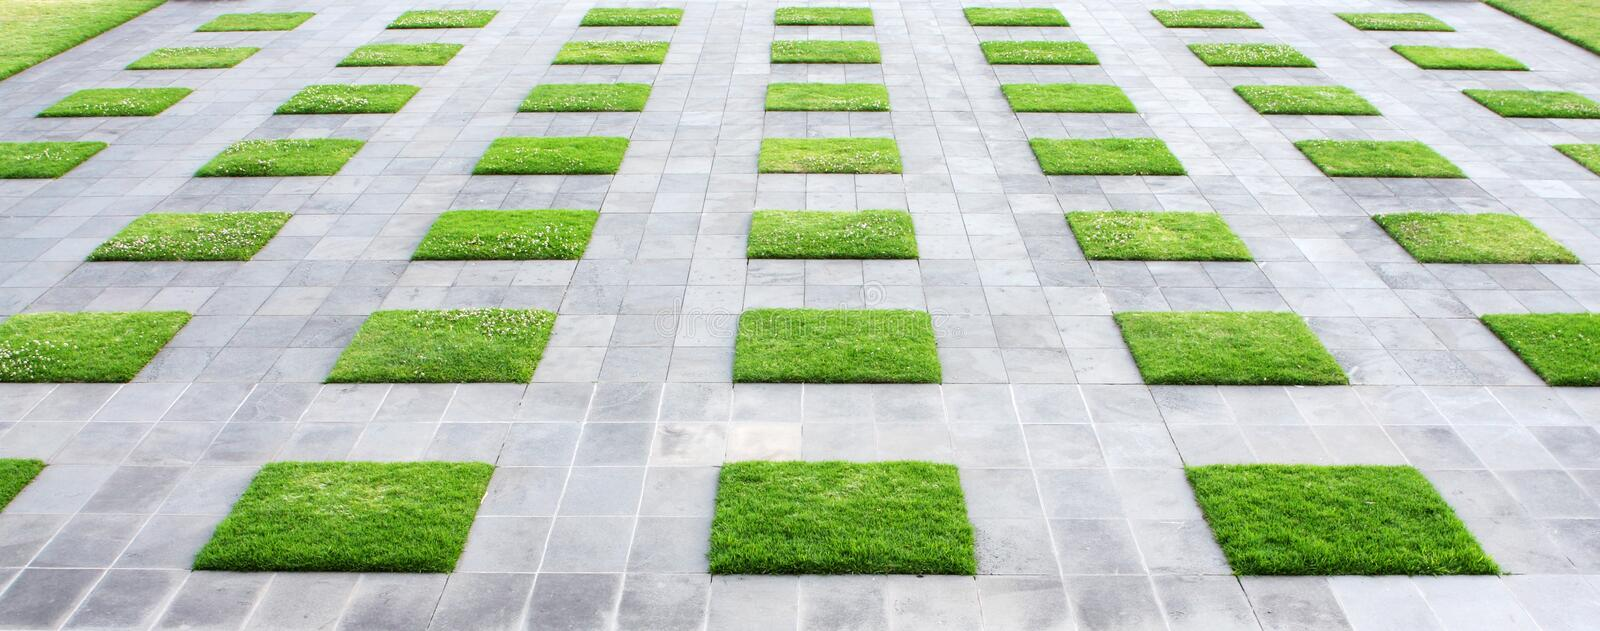 Geometric Paving stock images